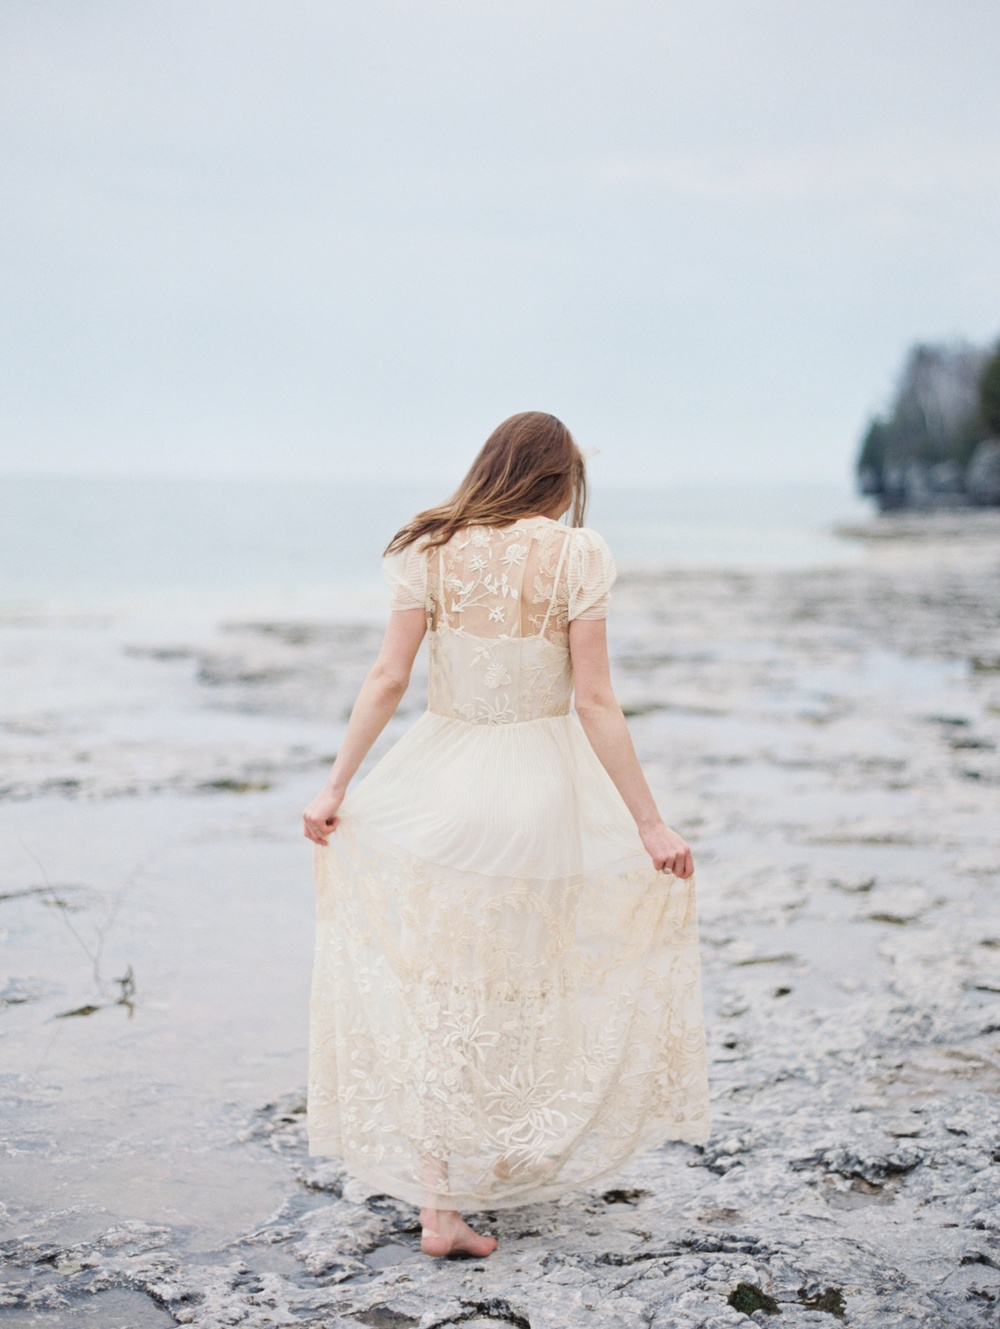 Kyle John l Fine Art Wedding Photography l Chicago, Copenhagen, California, New York, Destination l Blog l Cave Point_12